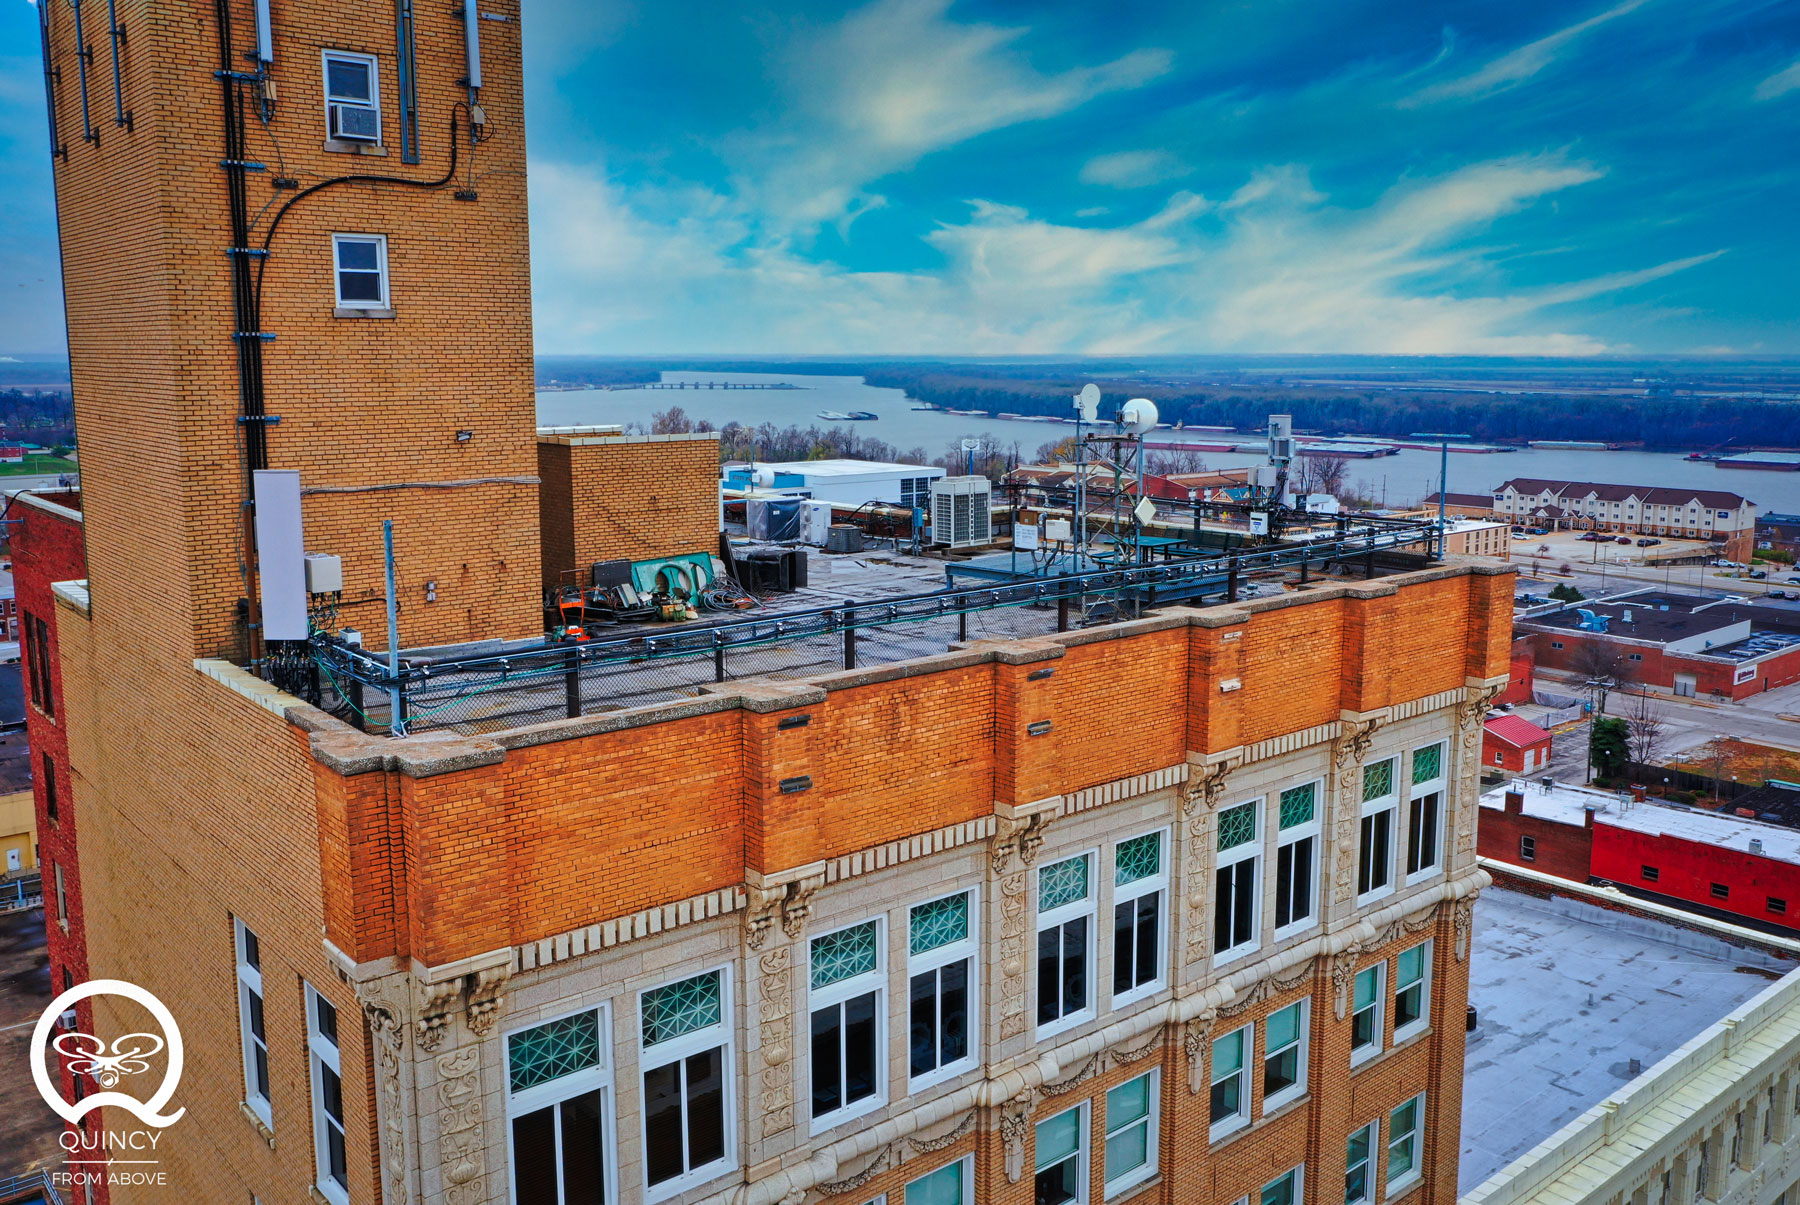 Quincy 1st (and Only) Skyscraper once featured a Rooftop Bar!